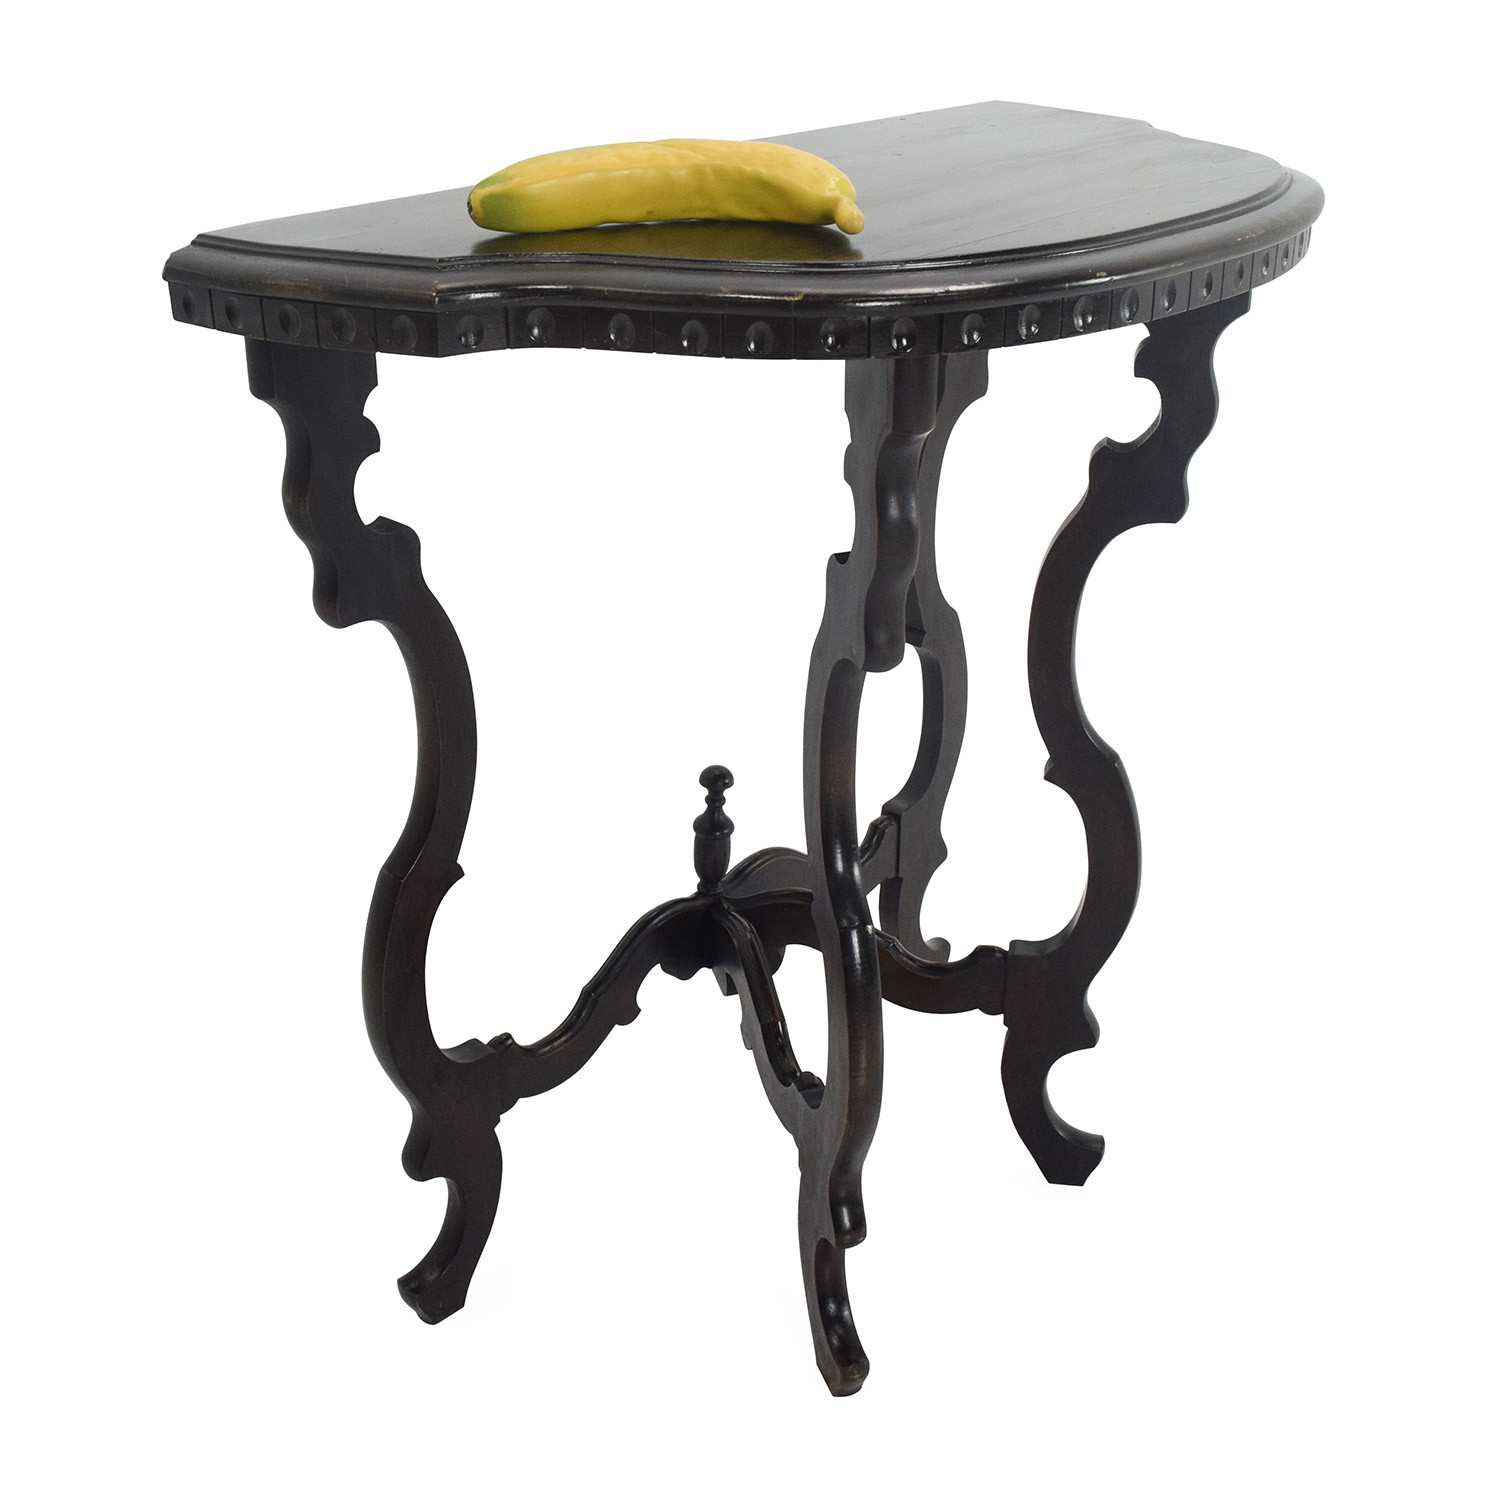 newest half moon accent table for side best off custom dark wood occasional tables black red patio umbrella small corner hallway marble nest trendy lamps concrete top mix living